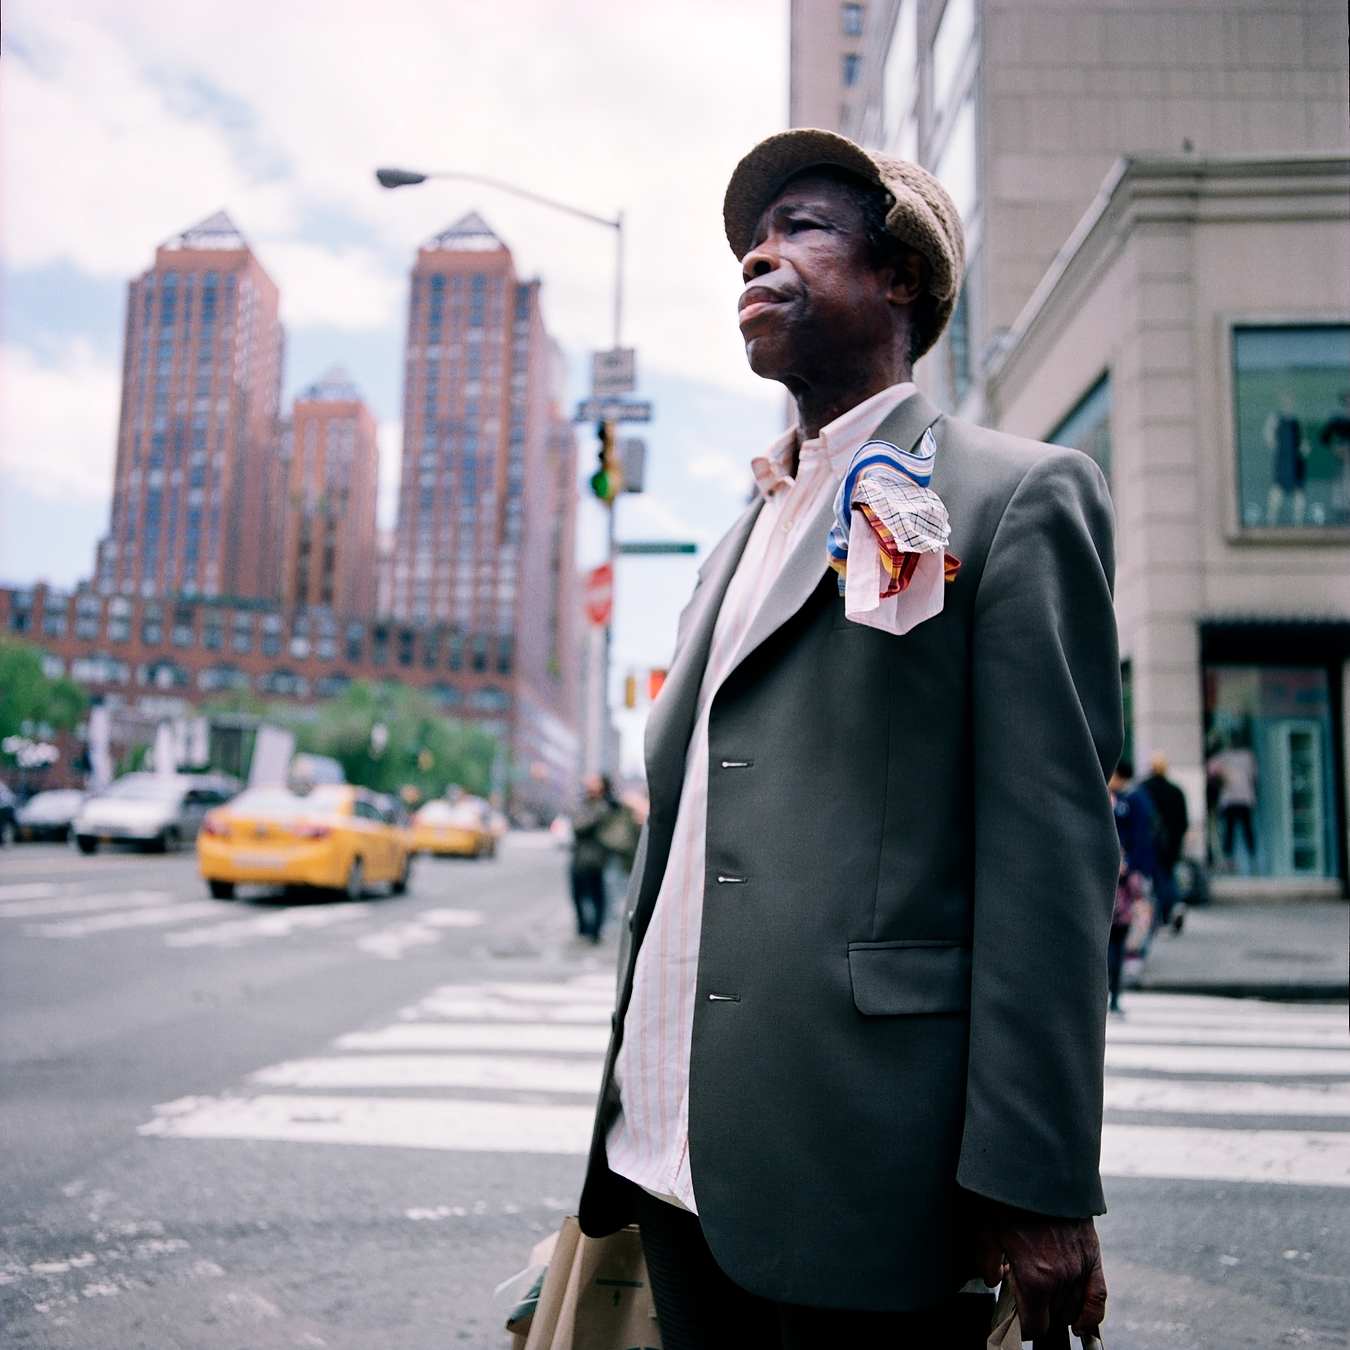 Maud WALAS Street photography NEW YORK 06.jpg